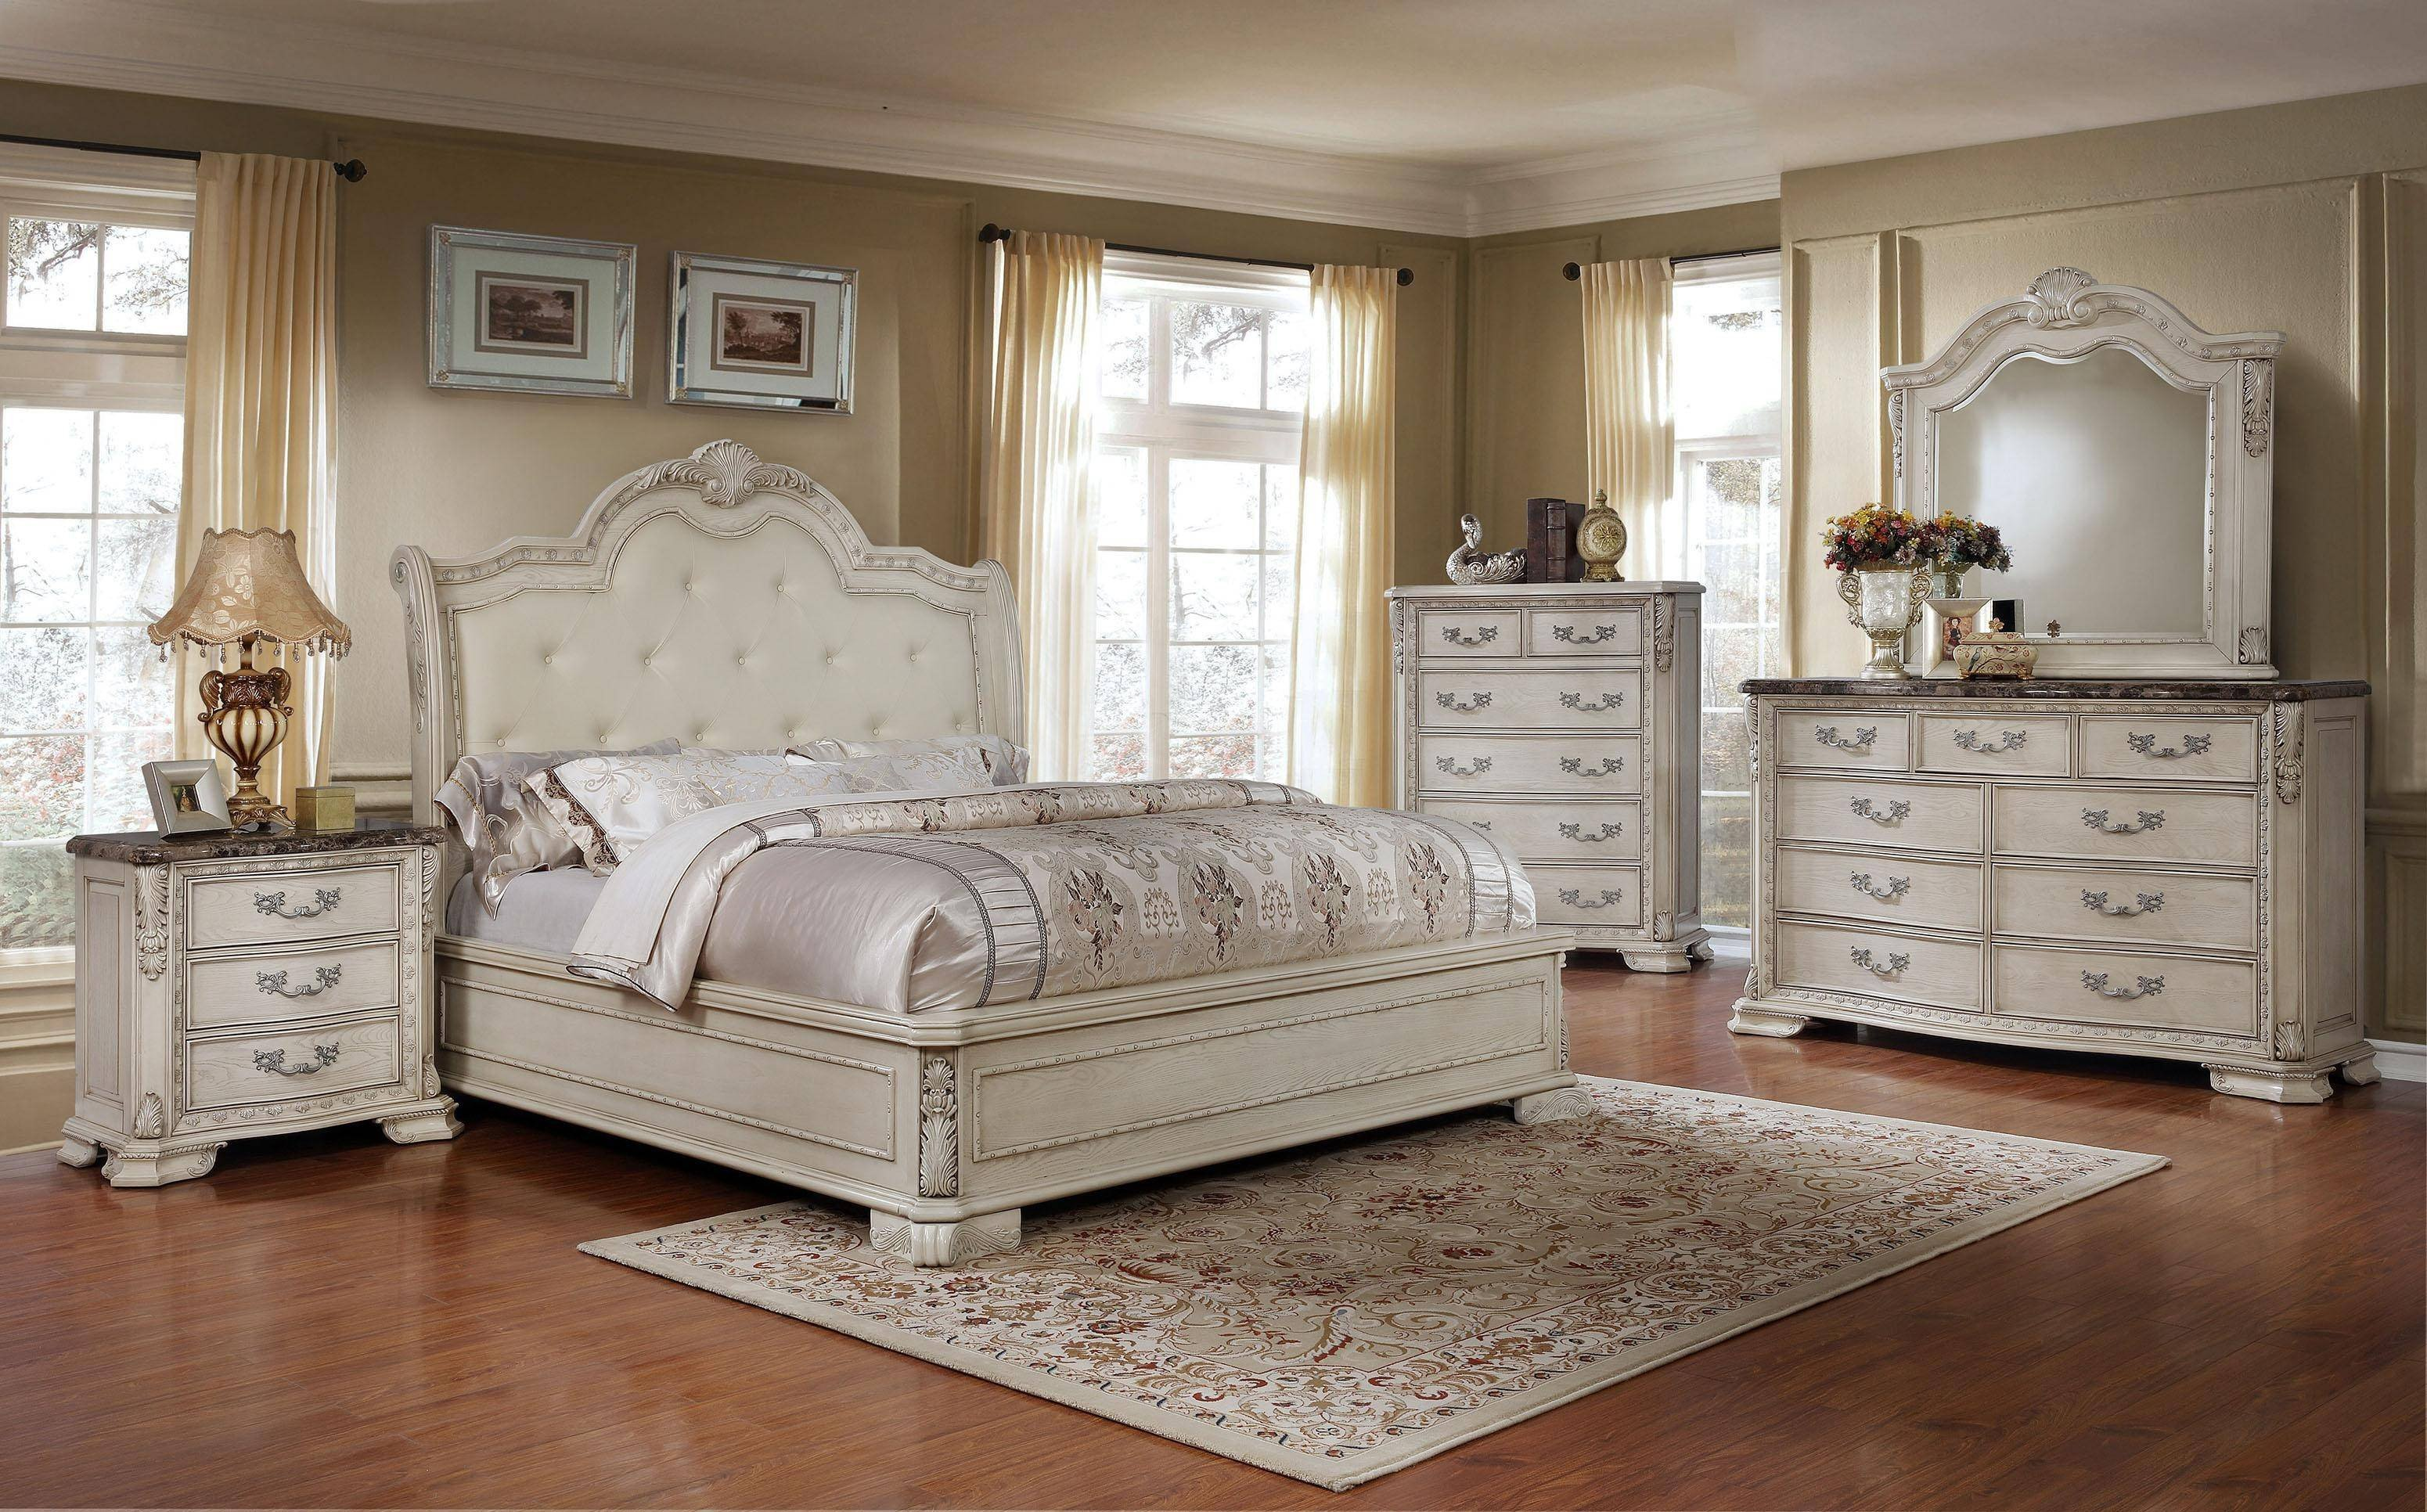 King Size Bedroom Set with Mattress Fresh Mcferran B1000 Antique White Tufted King Size Bedroom Set